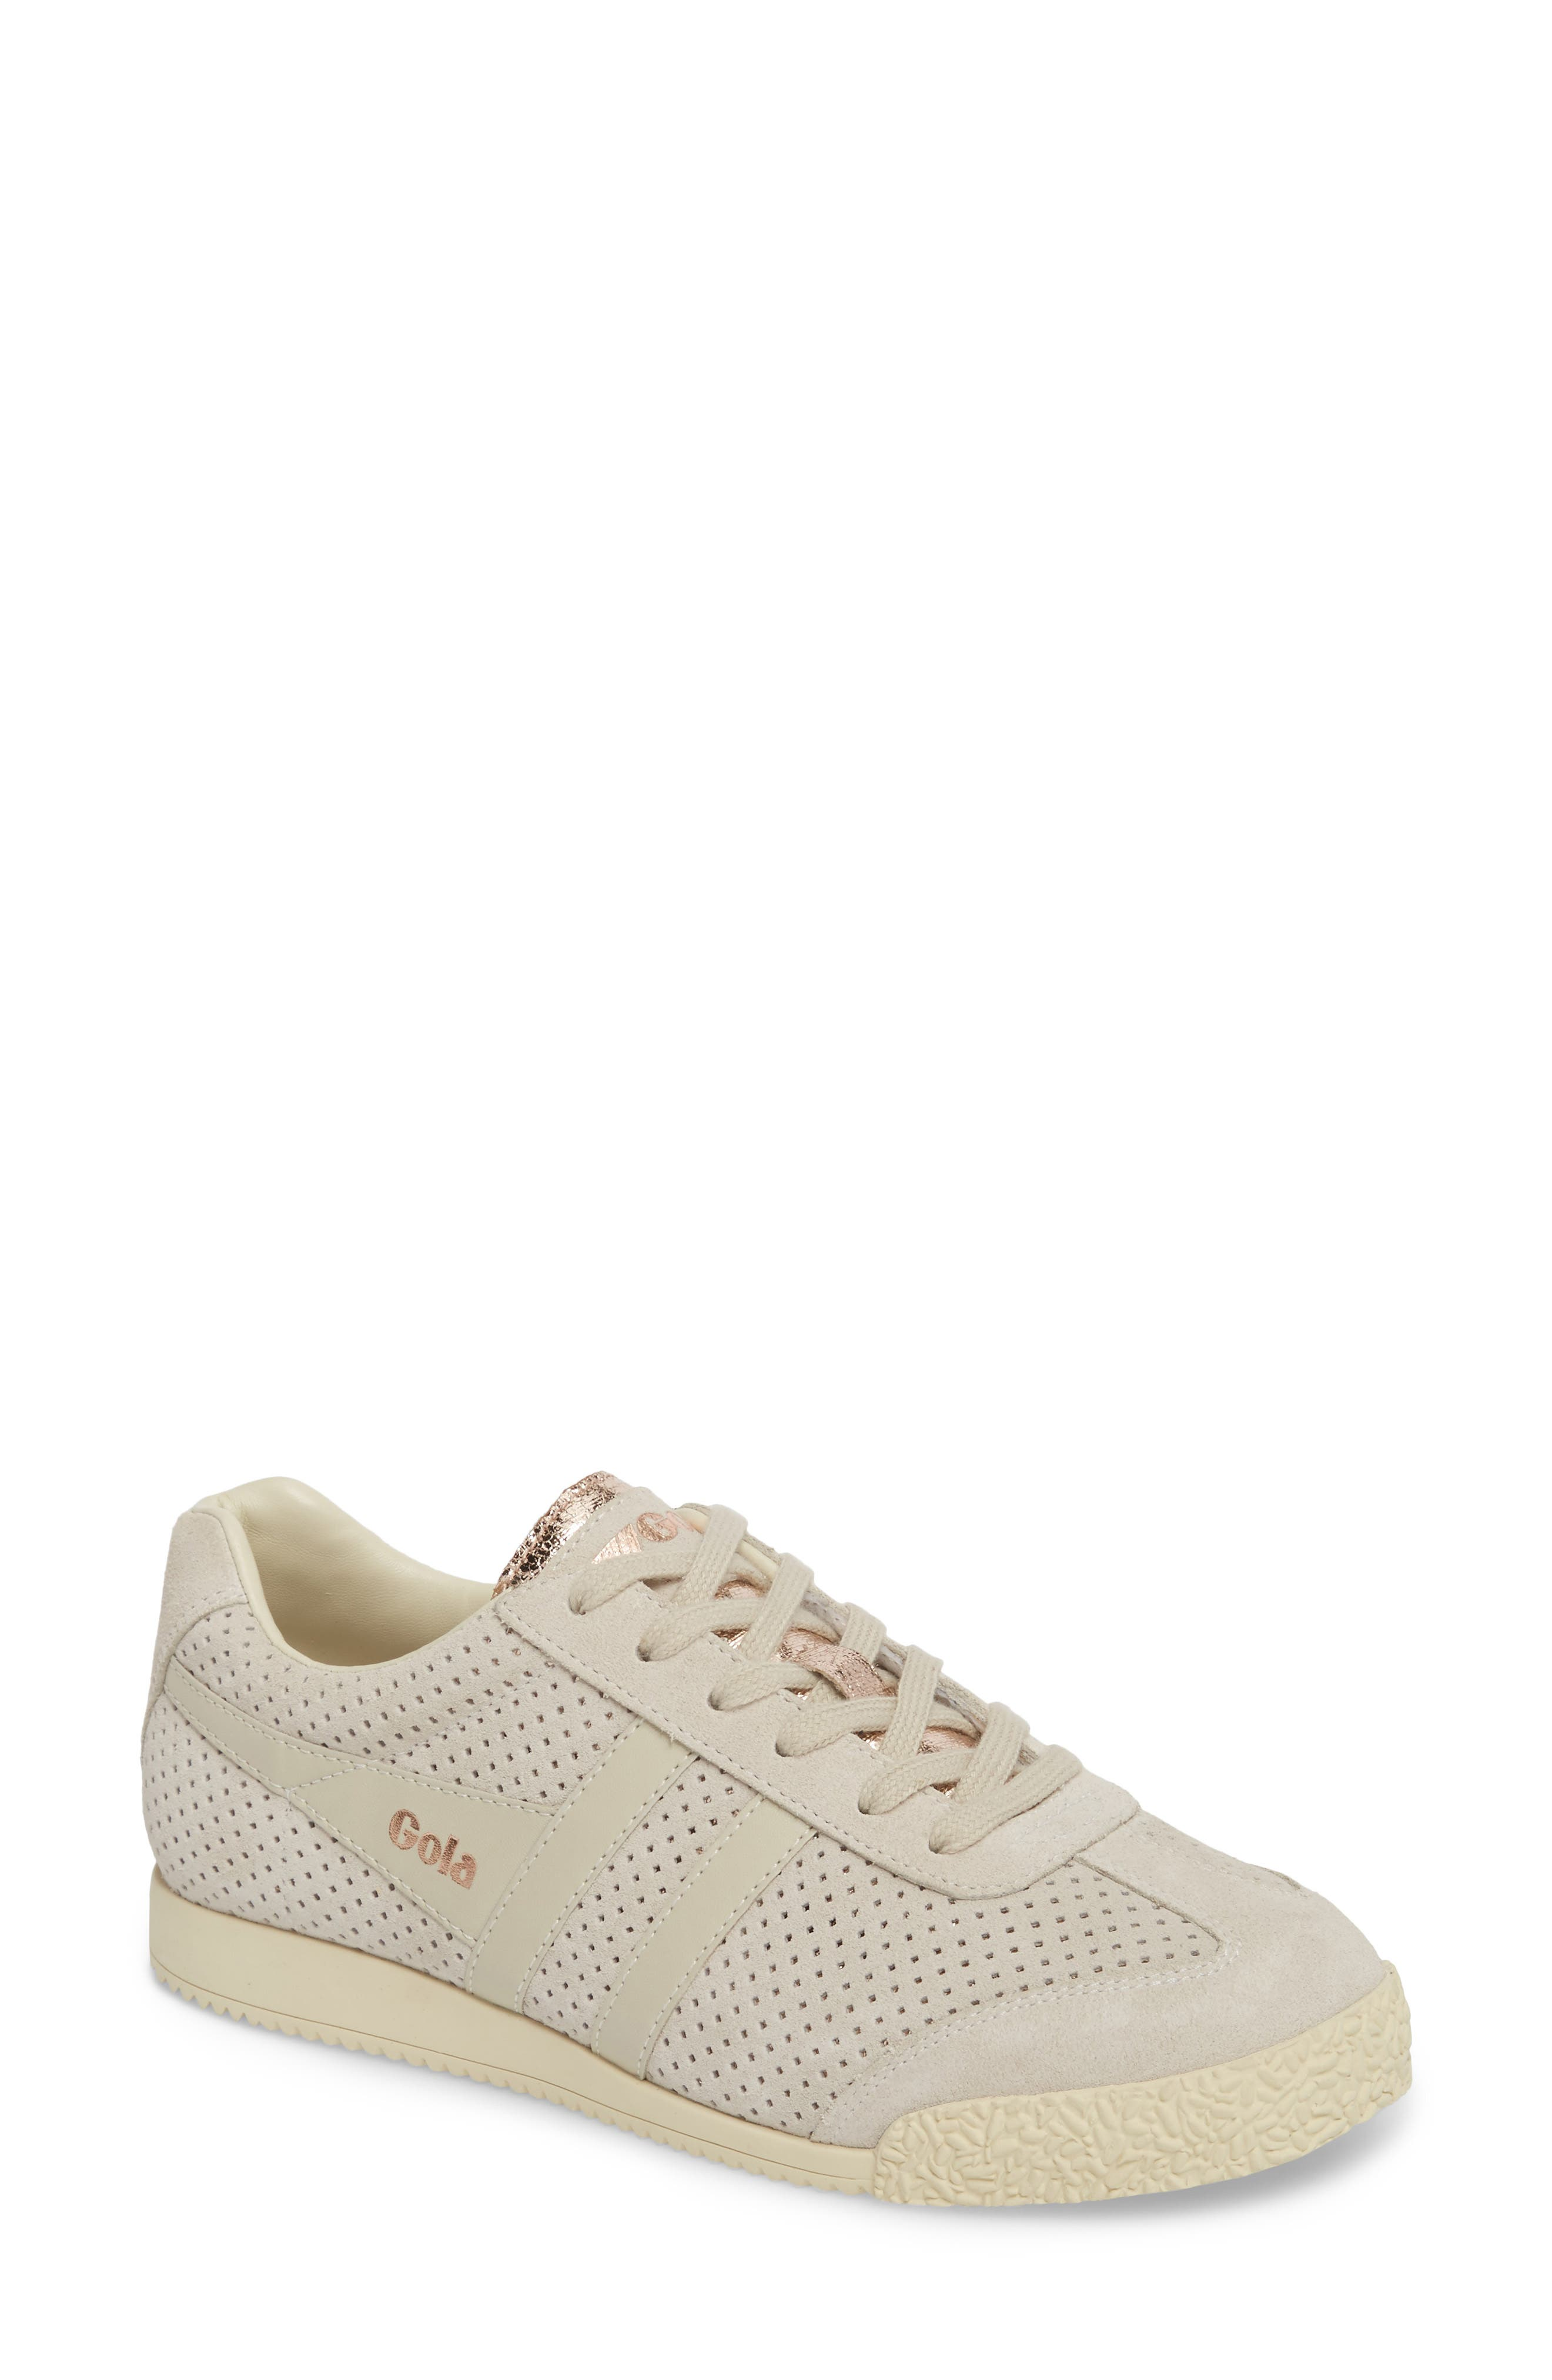 Harrier Glimmer Suede Low Top Sneaker,                             Main thumbnail 1, color,                             Windchime/ Gold/ Off White